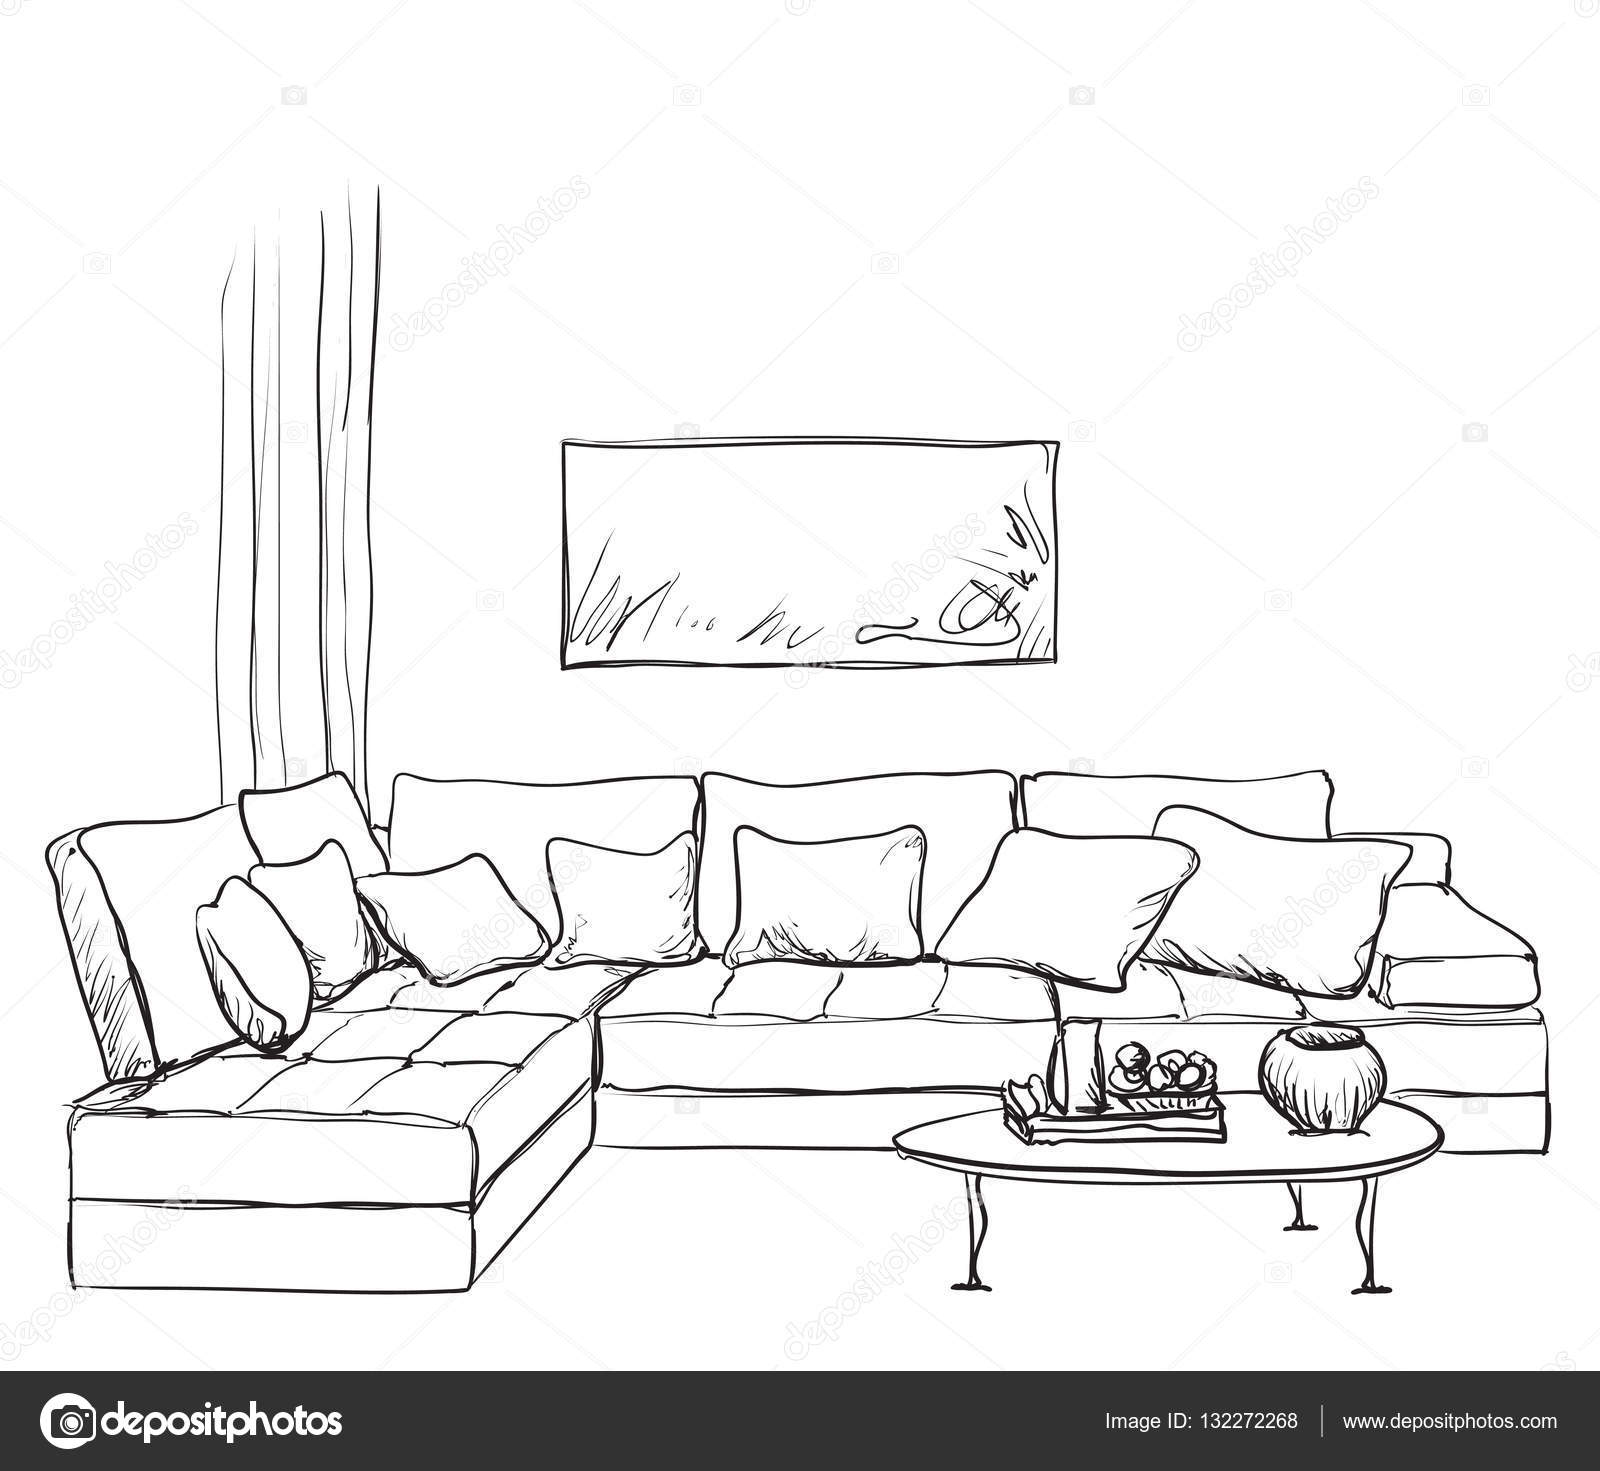 Drawn room Drawn sketch #132272268 Vector Stock